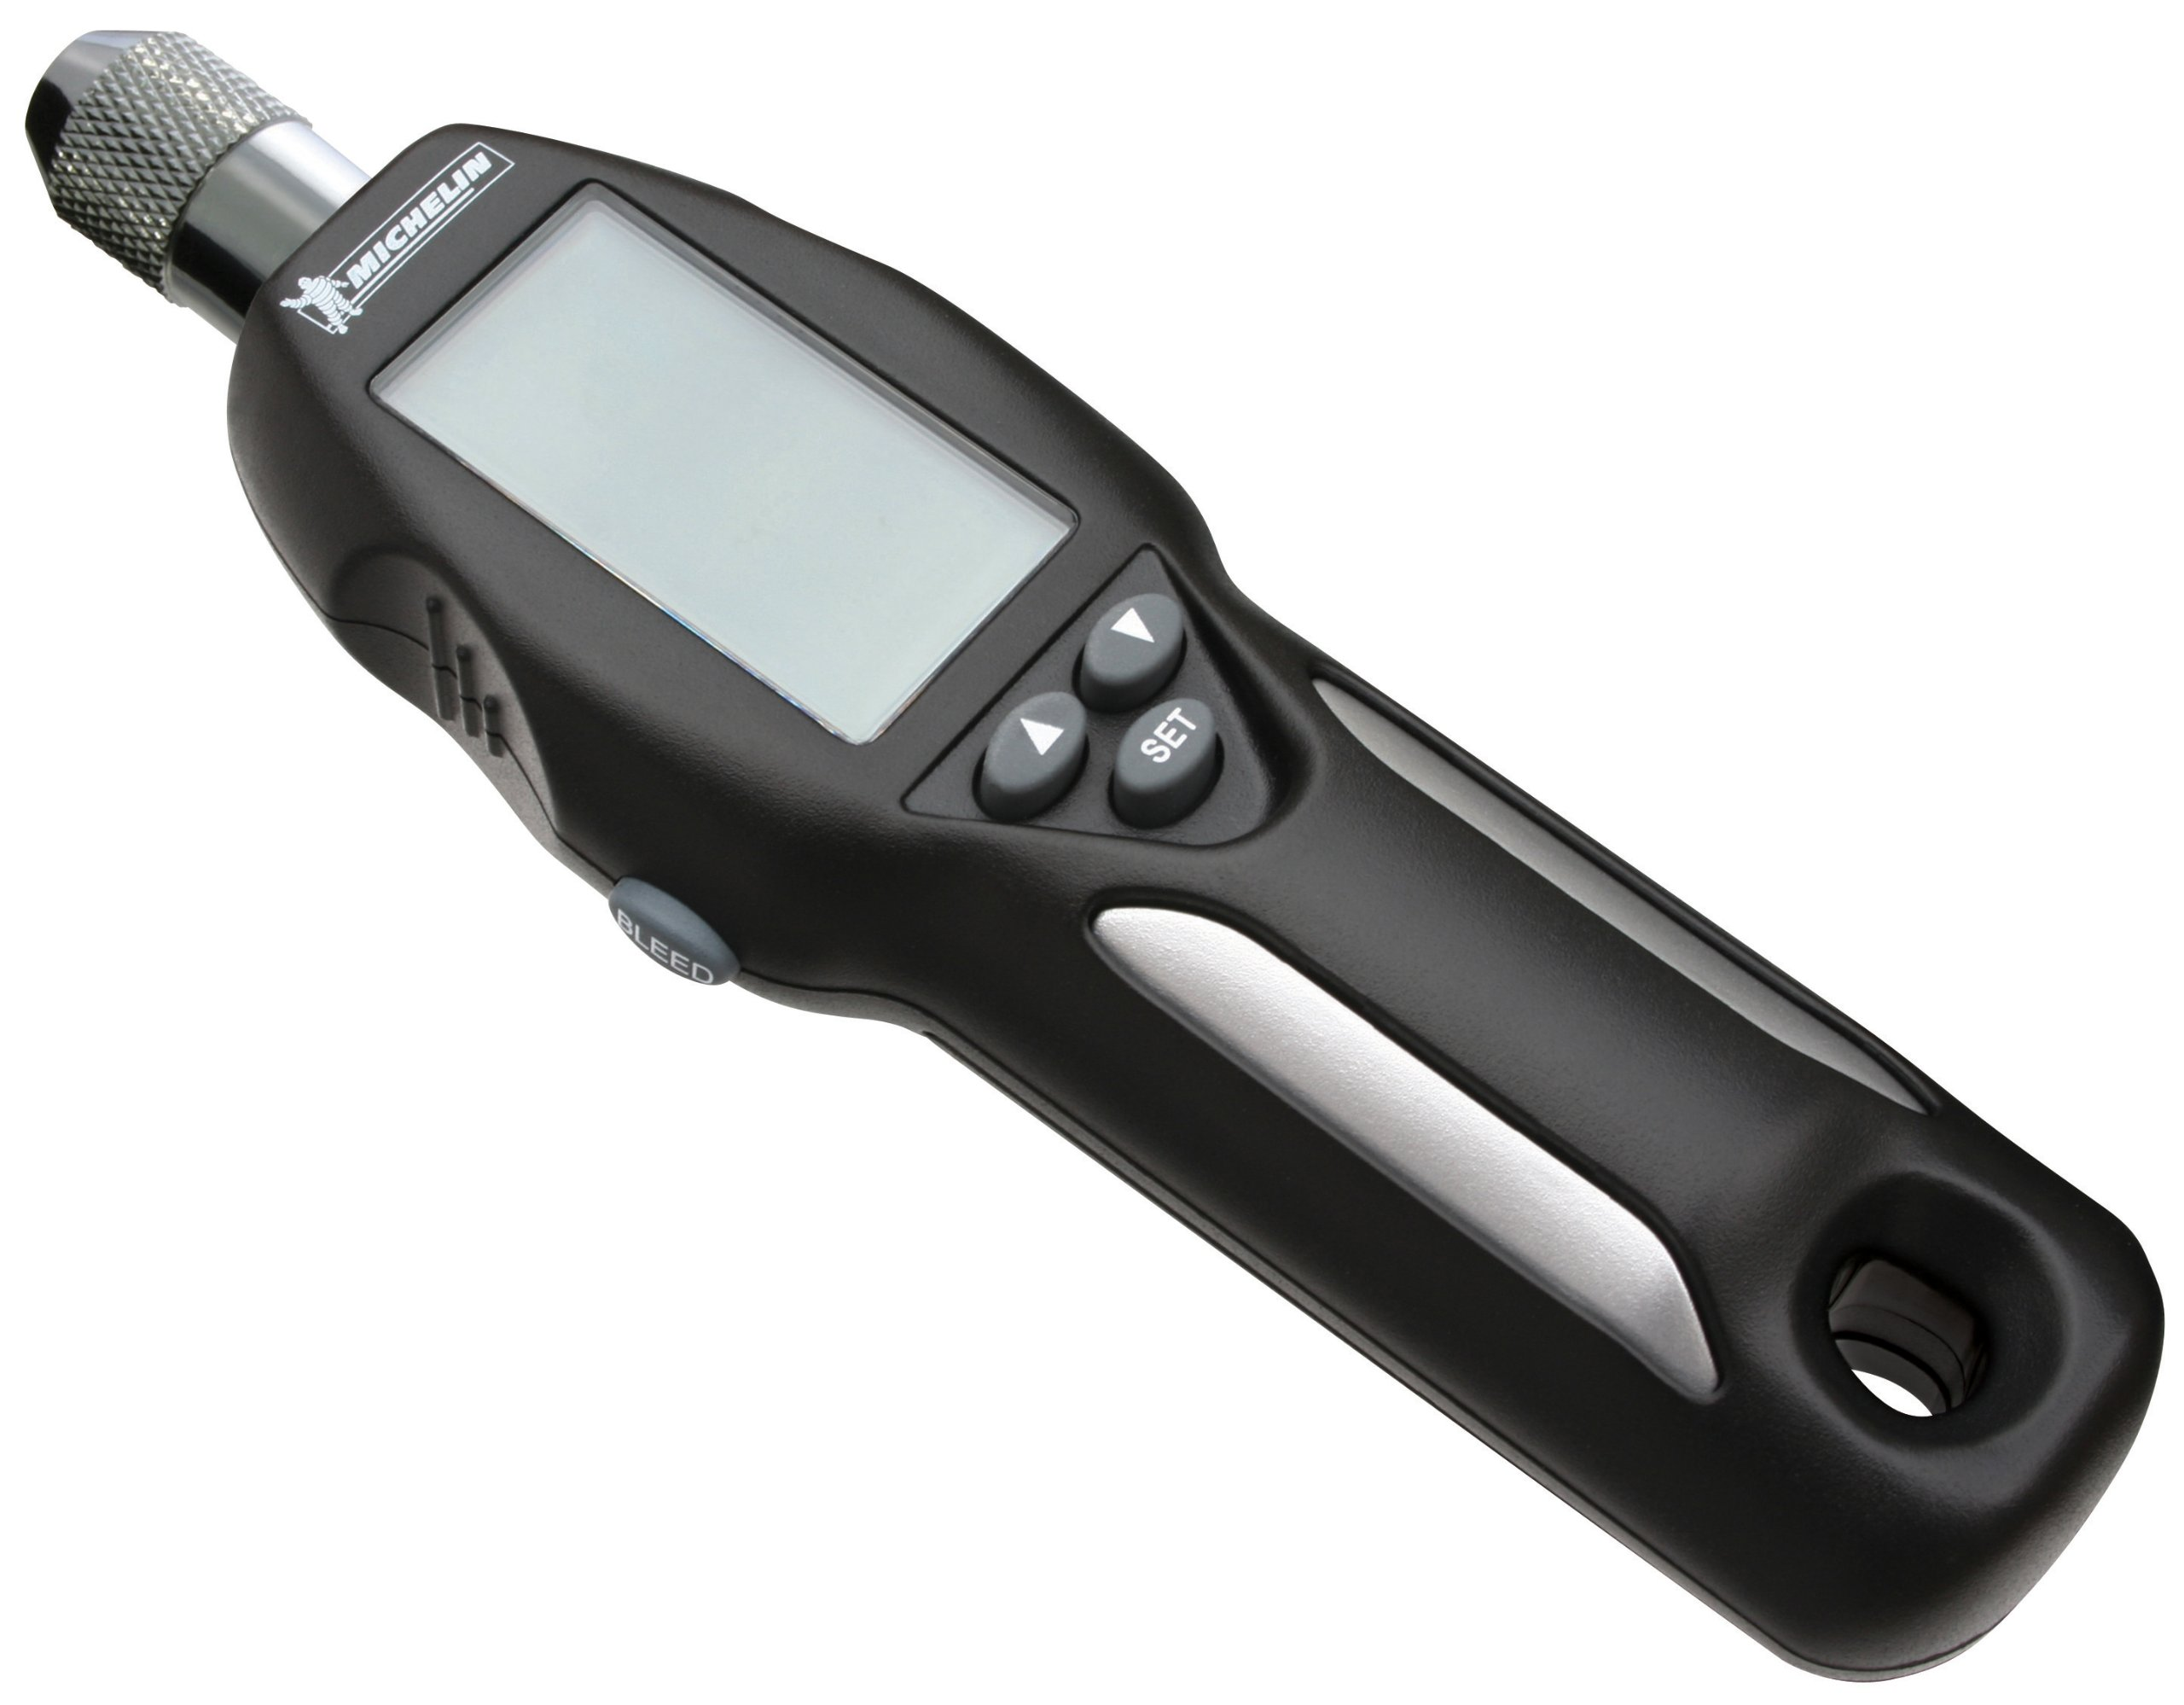 Michelin MN-4535B Digital Programmable Tire Gauge with Bleed Valve by Measurement Limited (Image #1)